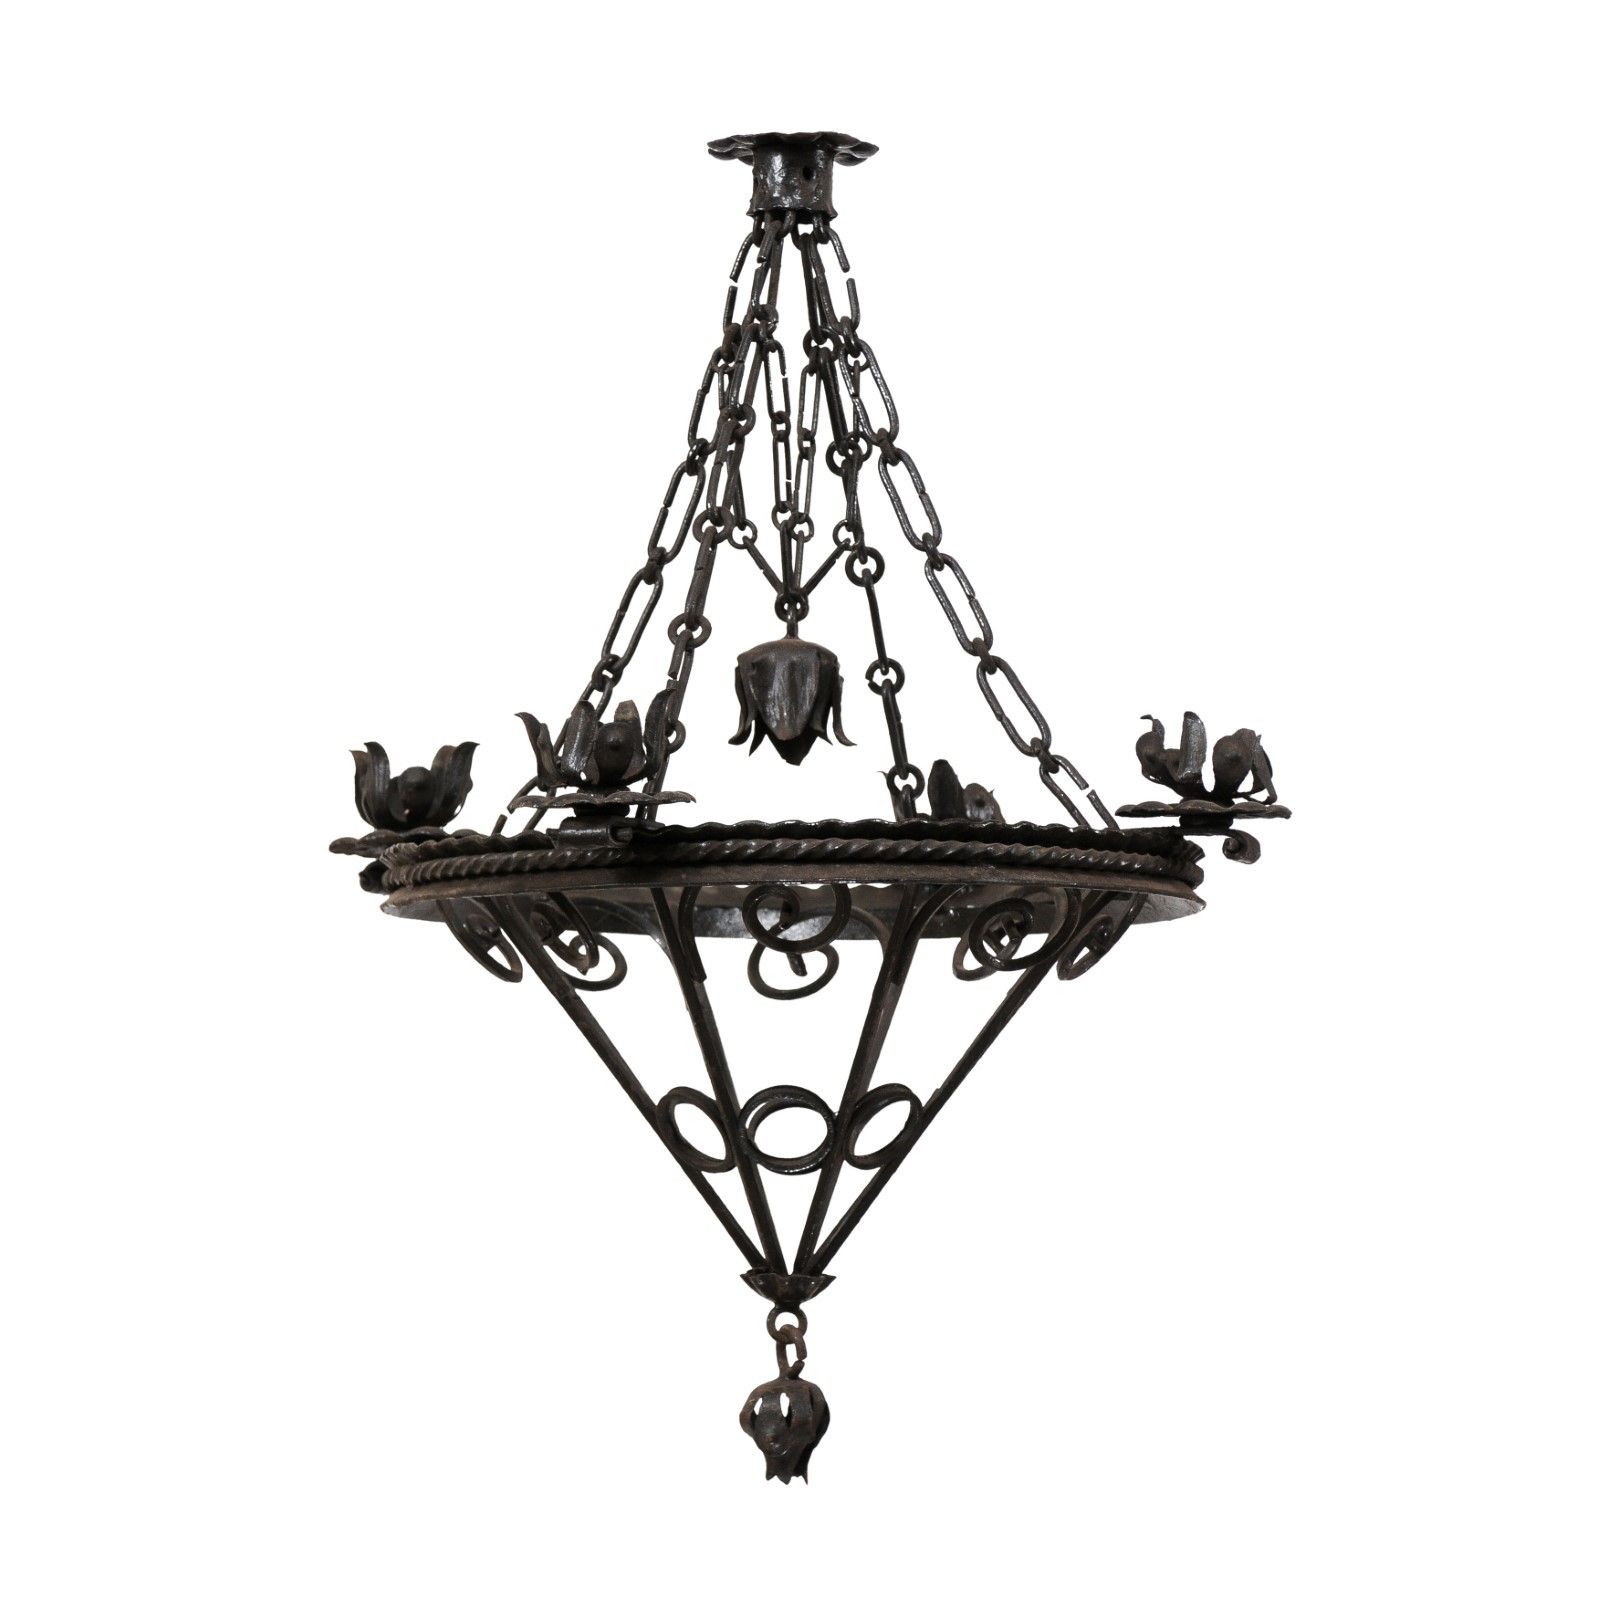 French Floral Motif Iron Hanging Light